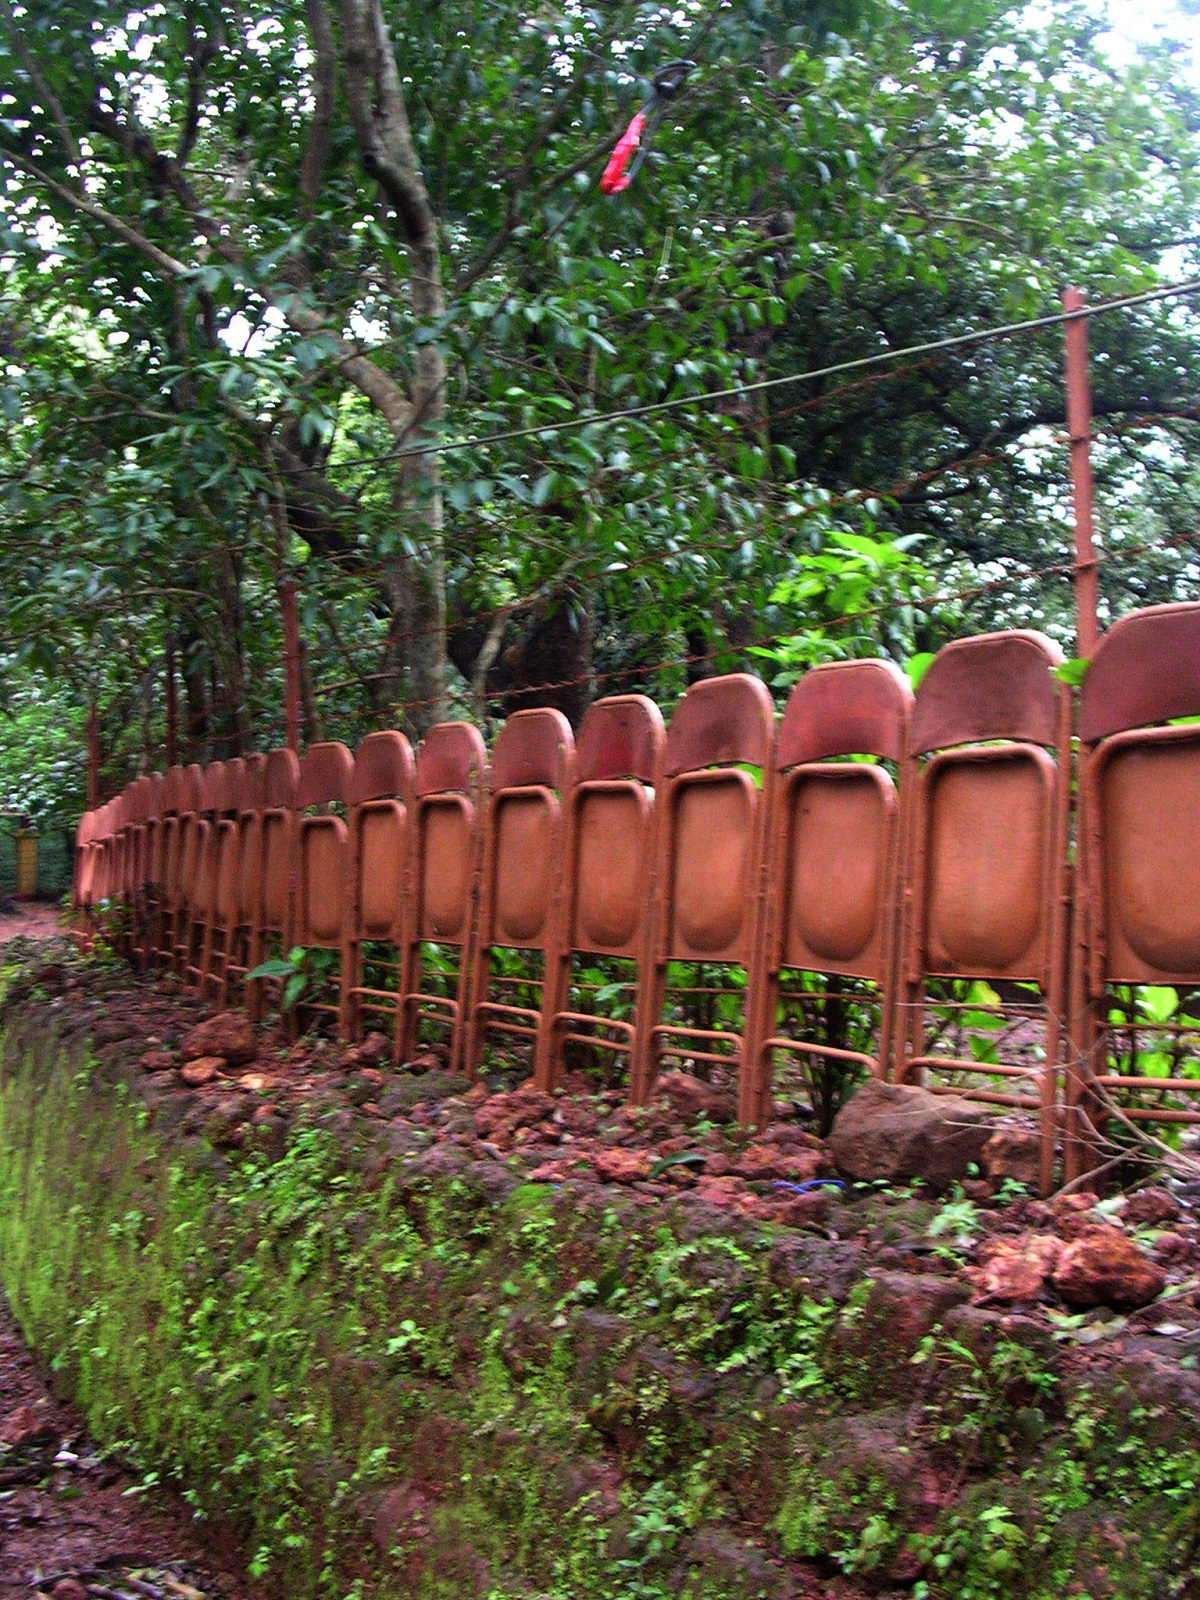 found this interesting barrier of an old building at matheran, maharashtra